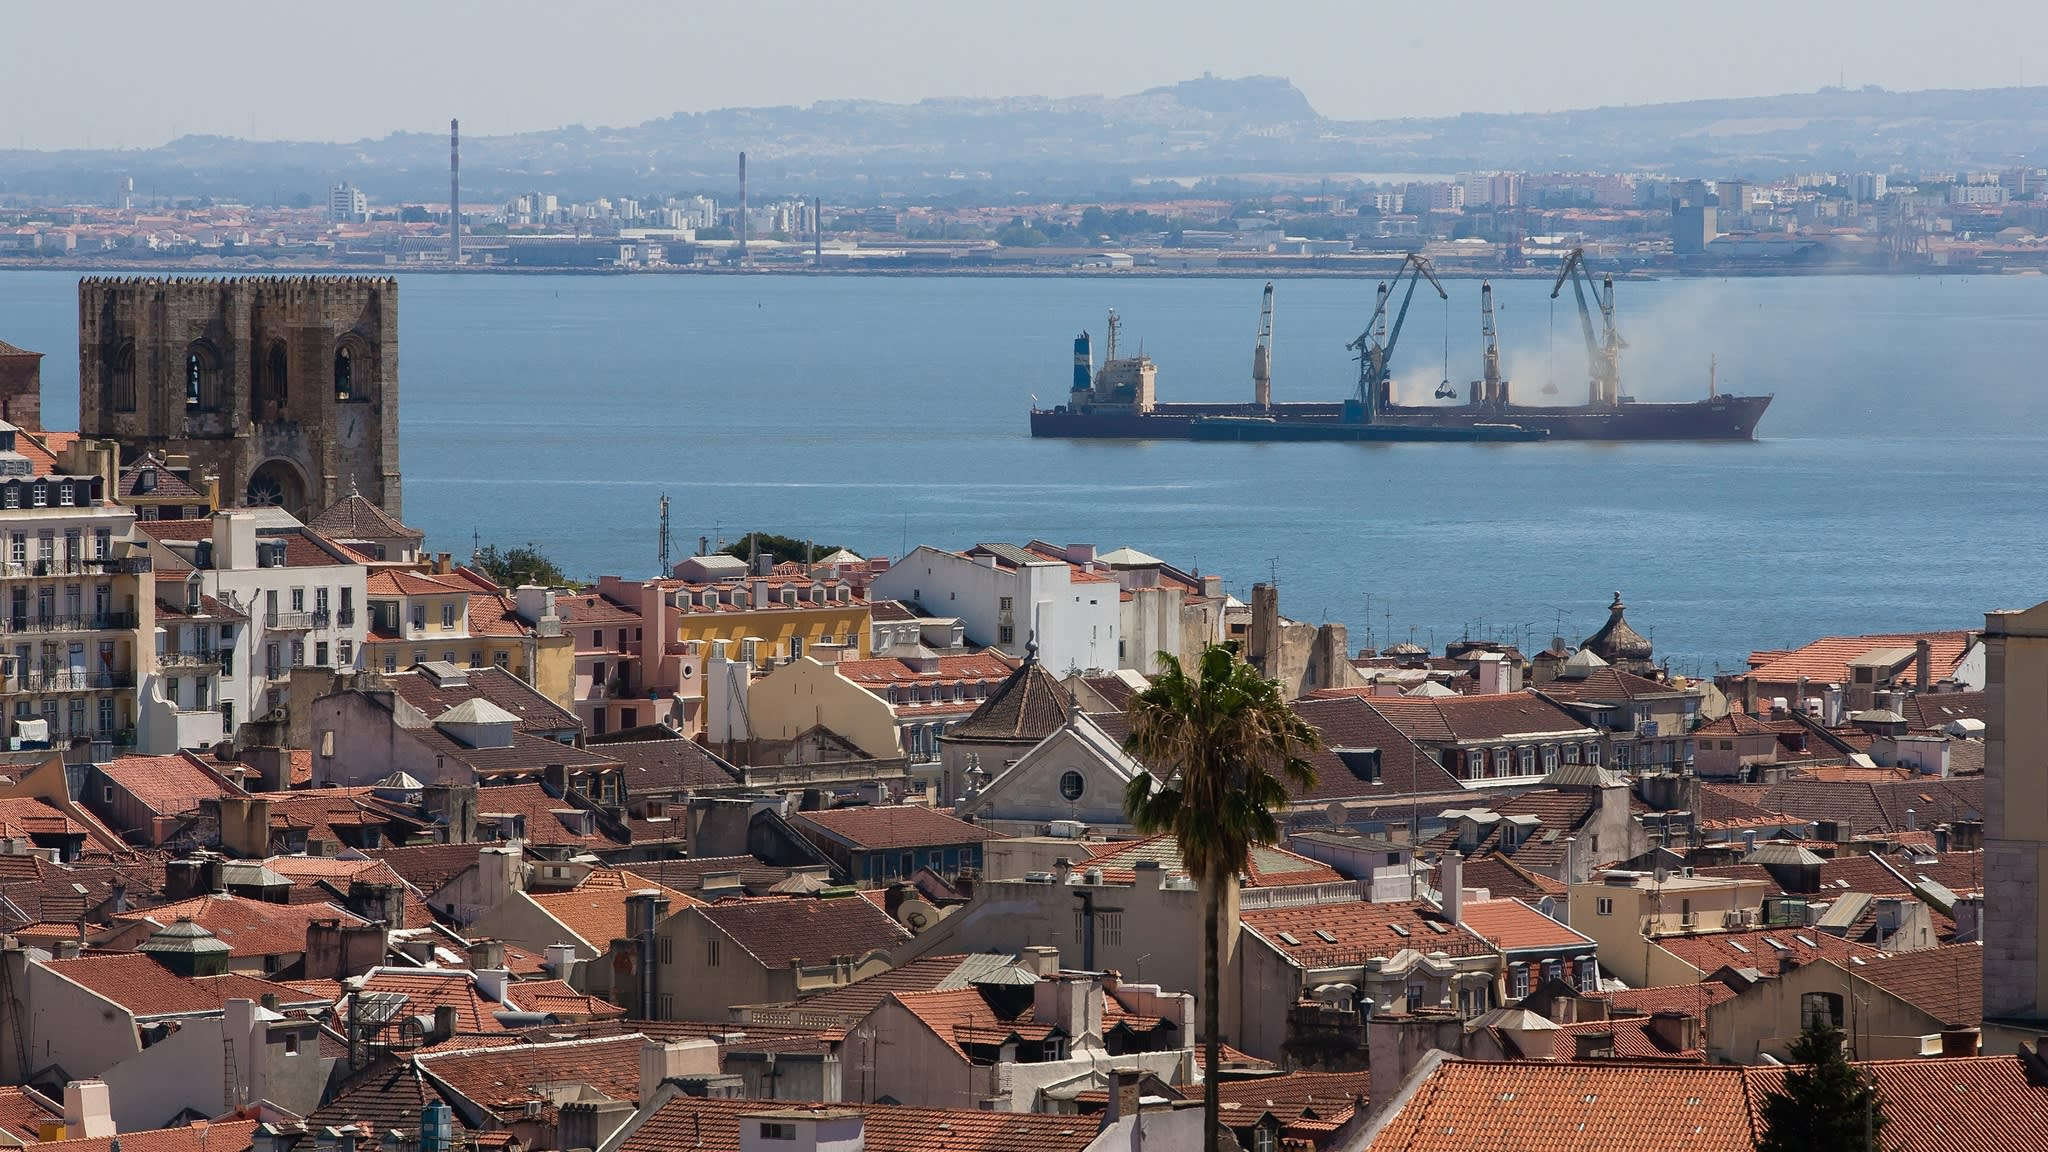 OECD signals risks to Portuguese economy despite 'marked improvements'   Financial Times